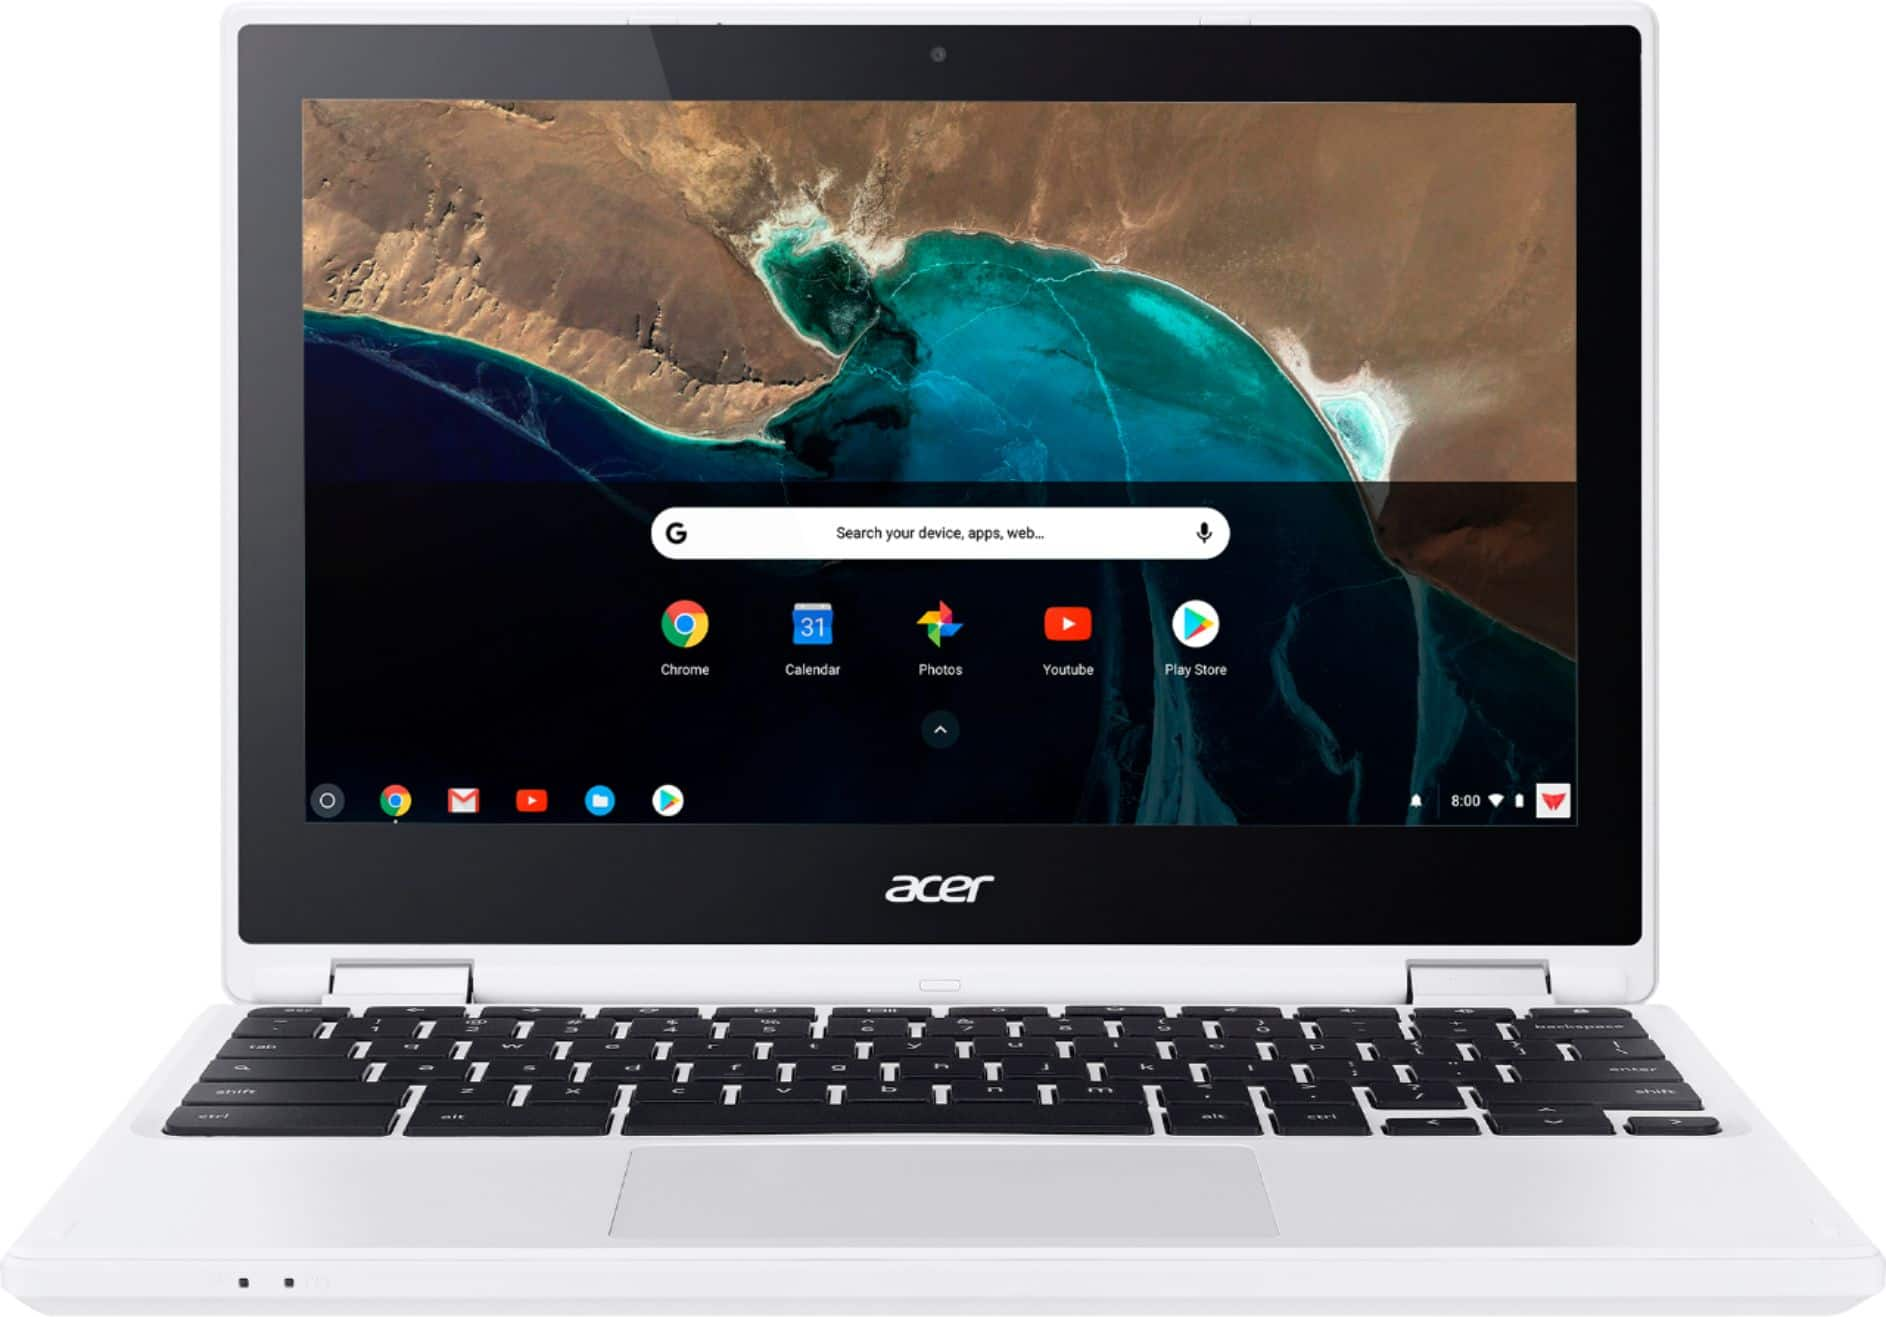 """Acer R 11 11.6"""" 2-In-1 Touchscreen Chromebook: N3060, 4GB DDR3, 16GB eMMC $199 ($169 w/Student Deals) + Free Shipping"""